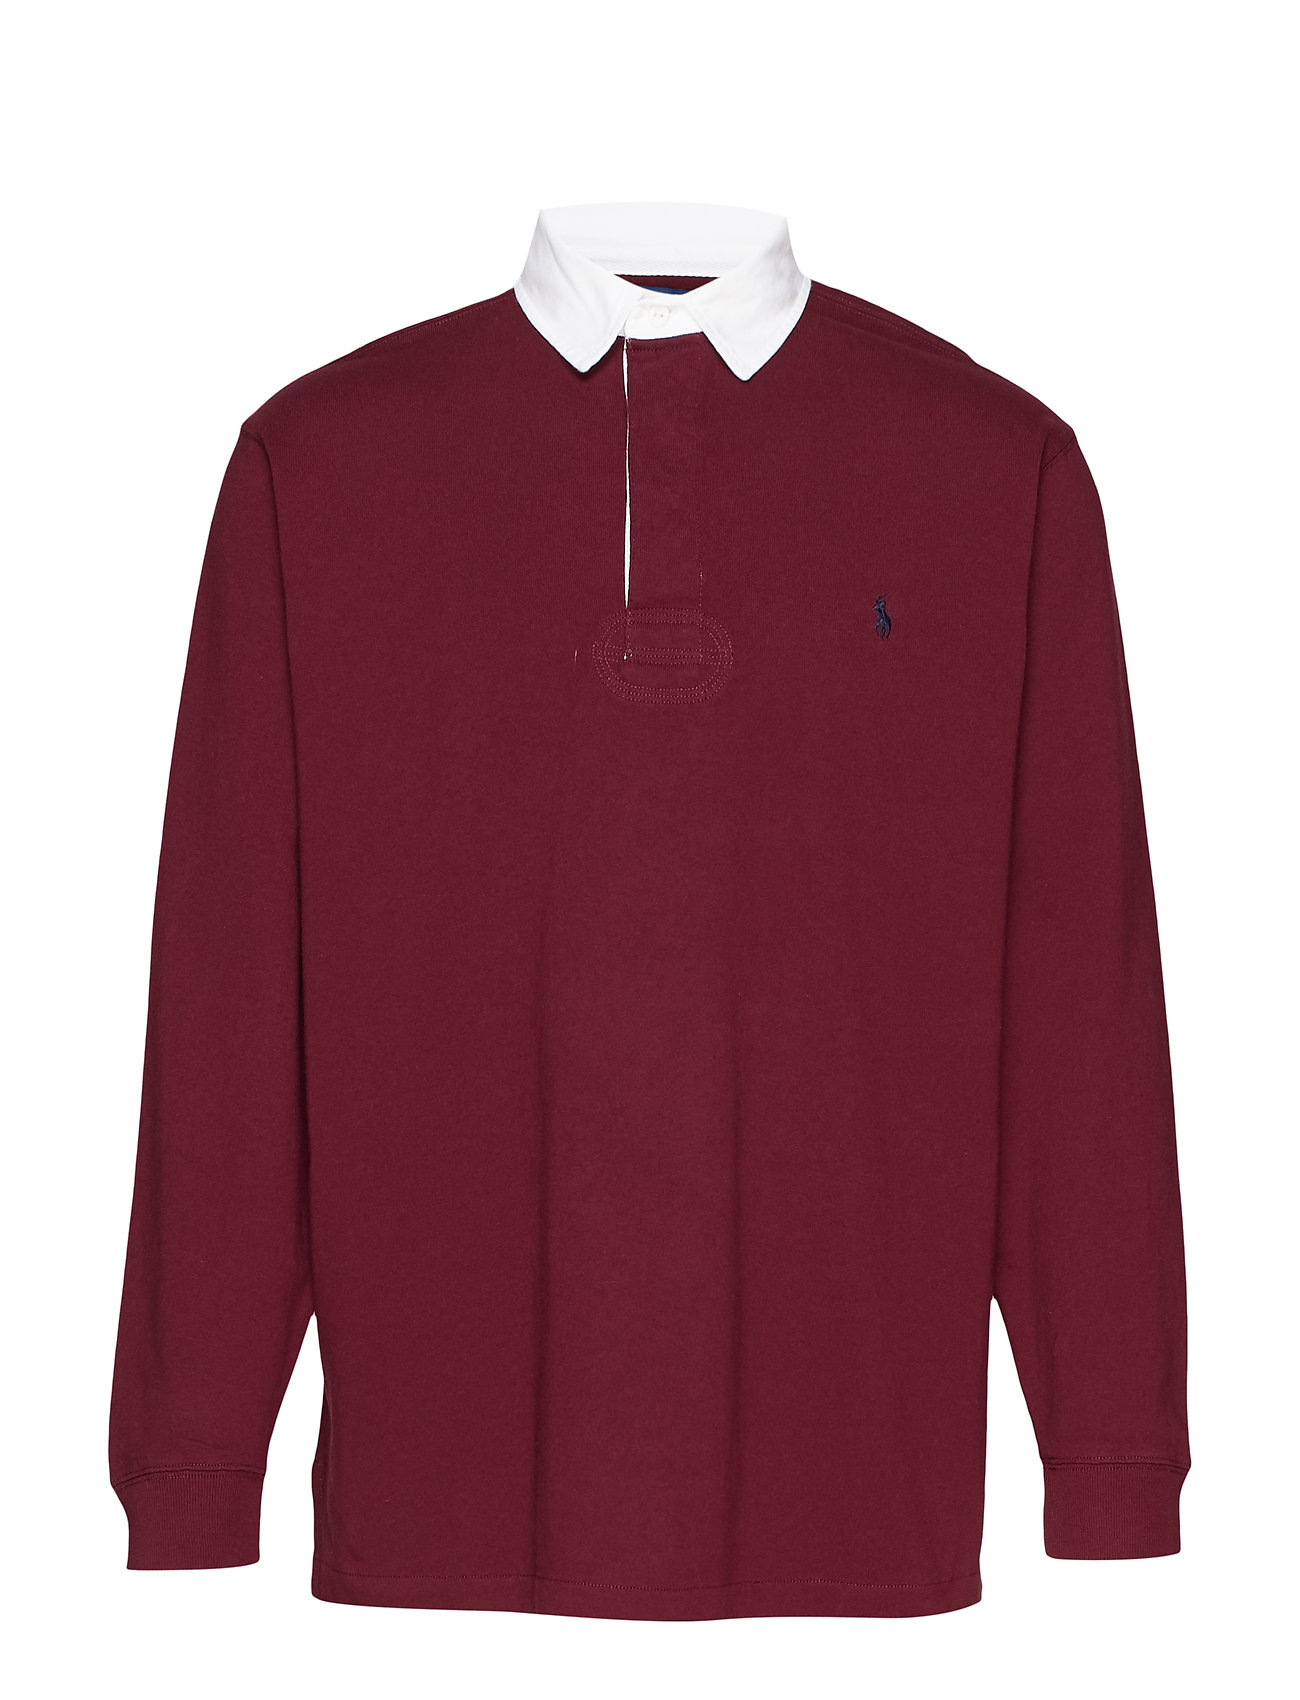 Polo Ralph Lauren Big & Tall The Iconic Rugby Shirt - CLASSIC WINE/C791